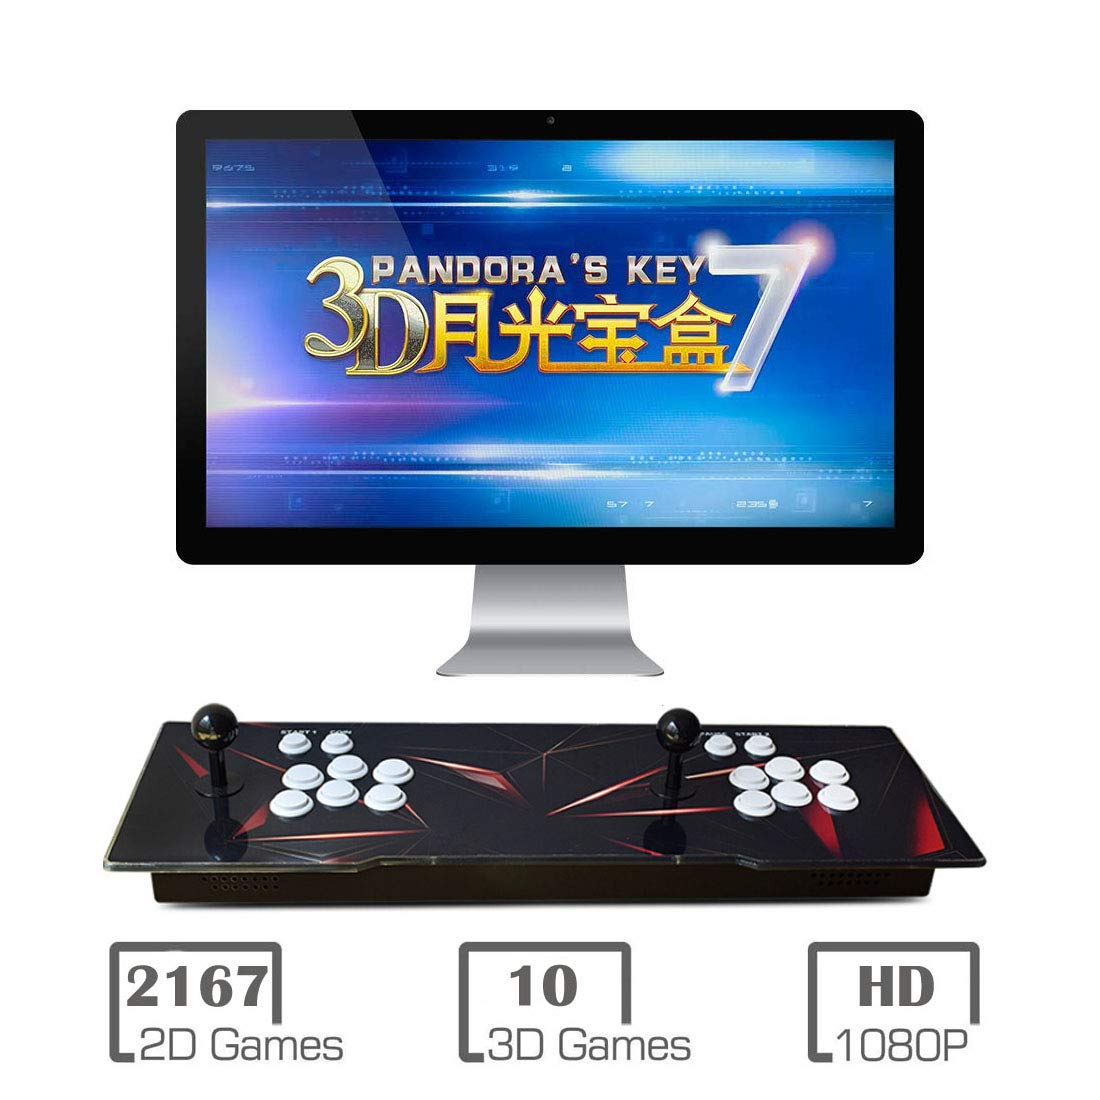 MYMIQEY 3D Pandora Key 7 Arcade Game Console | 2177 Retro HD Games | Add More Games | Full HD (1920x1080) Video | Support Multiplayer Online | 2 Player Game Controls | HDMI/VGA/USB/AUX Audio Output by MYMIQEY (Image #1)